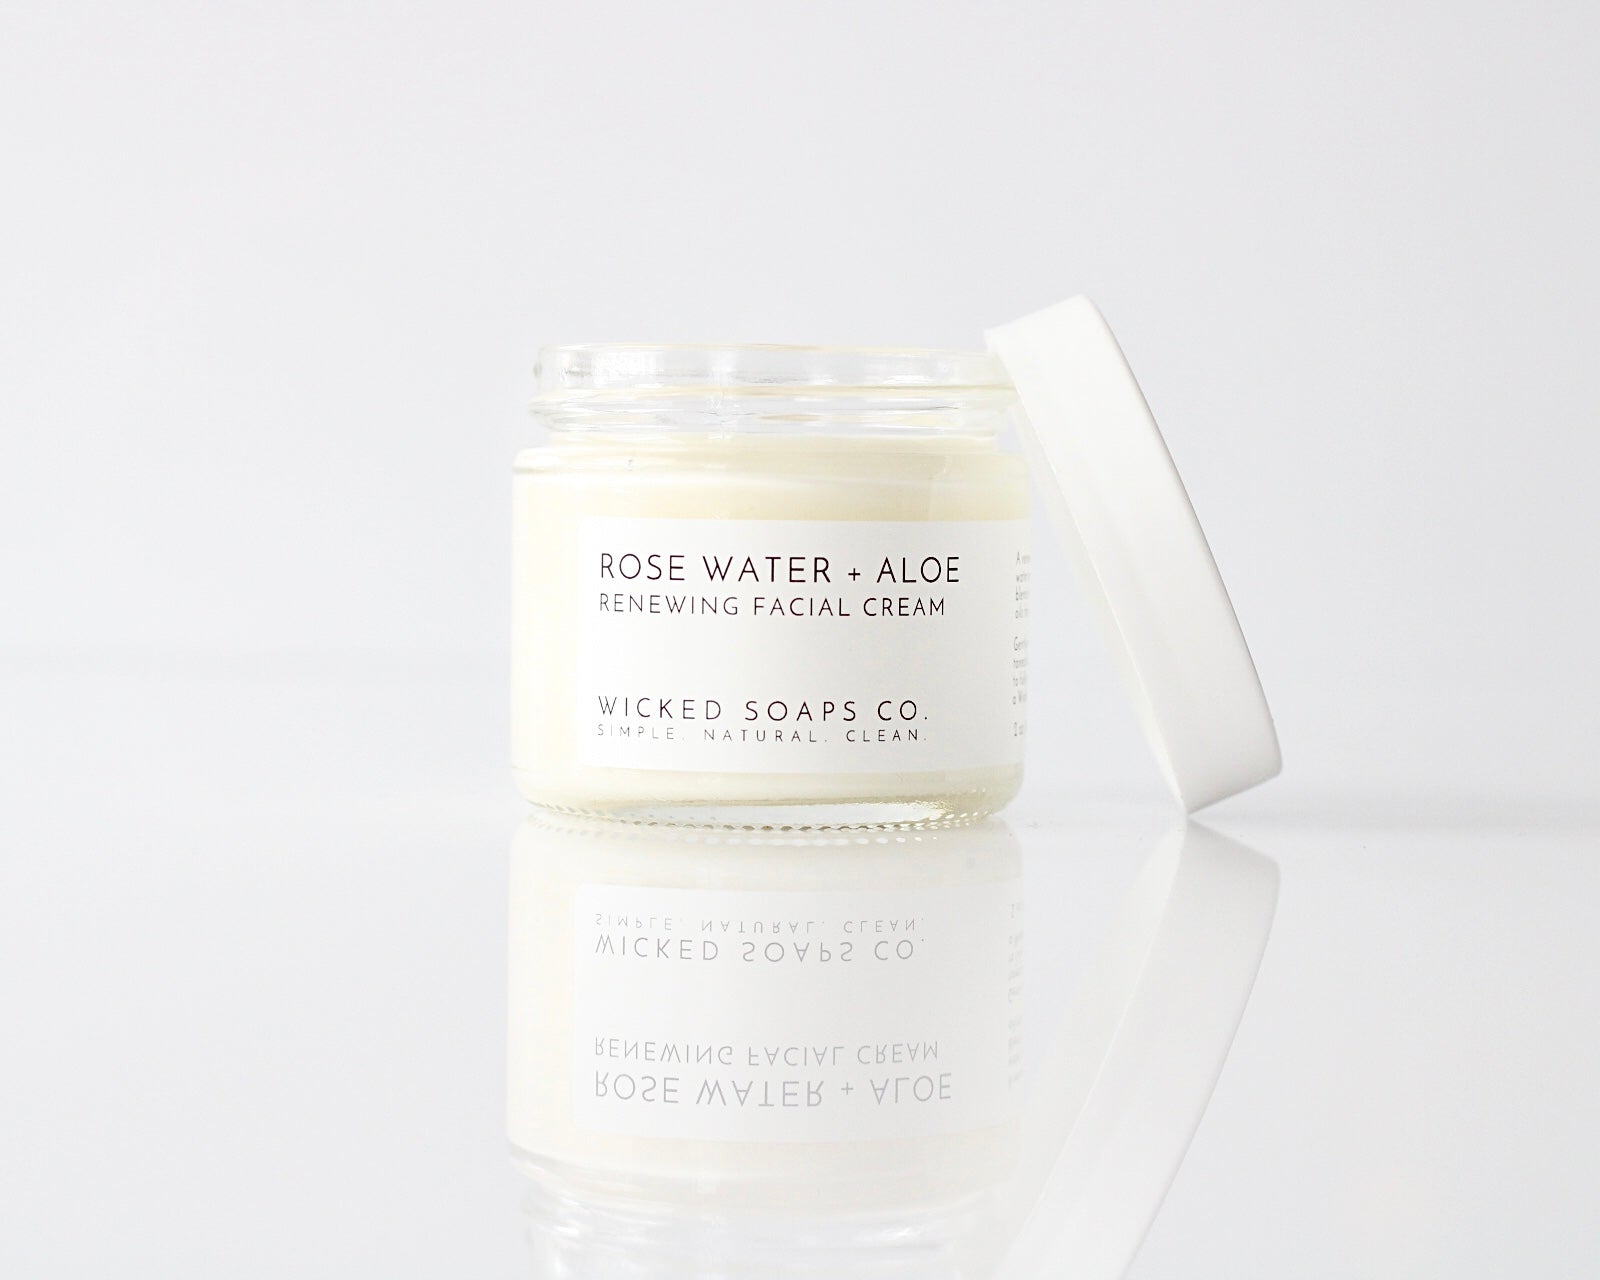 Rose Water + Aloe Facial Cream